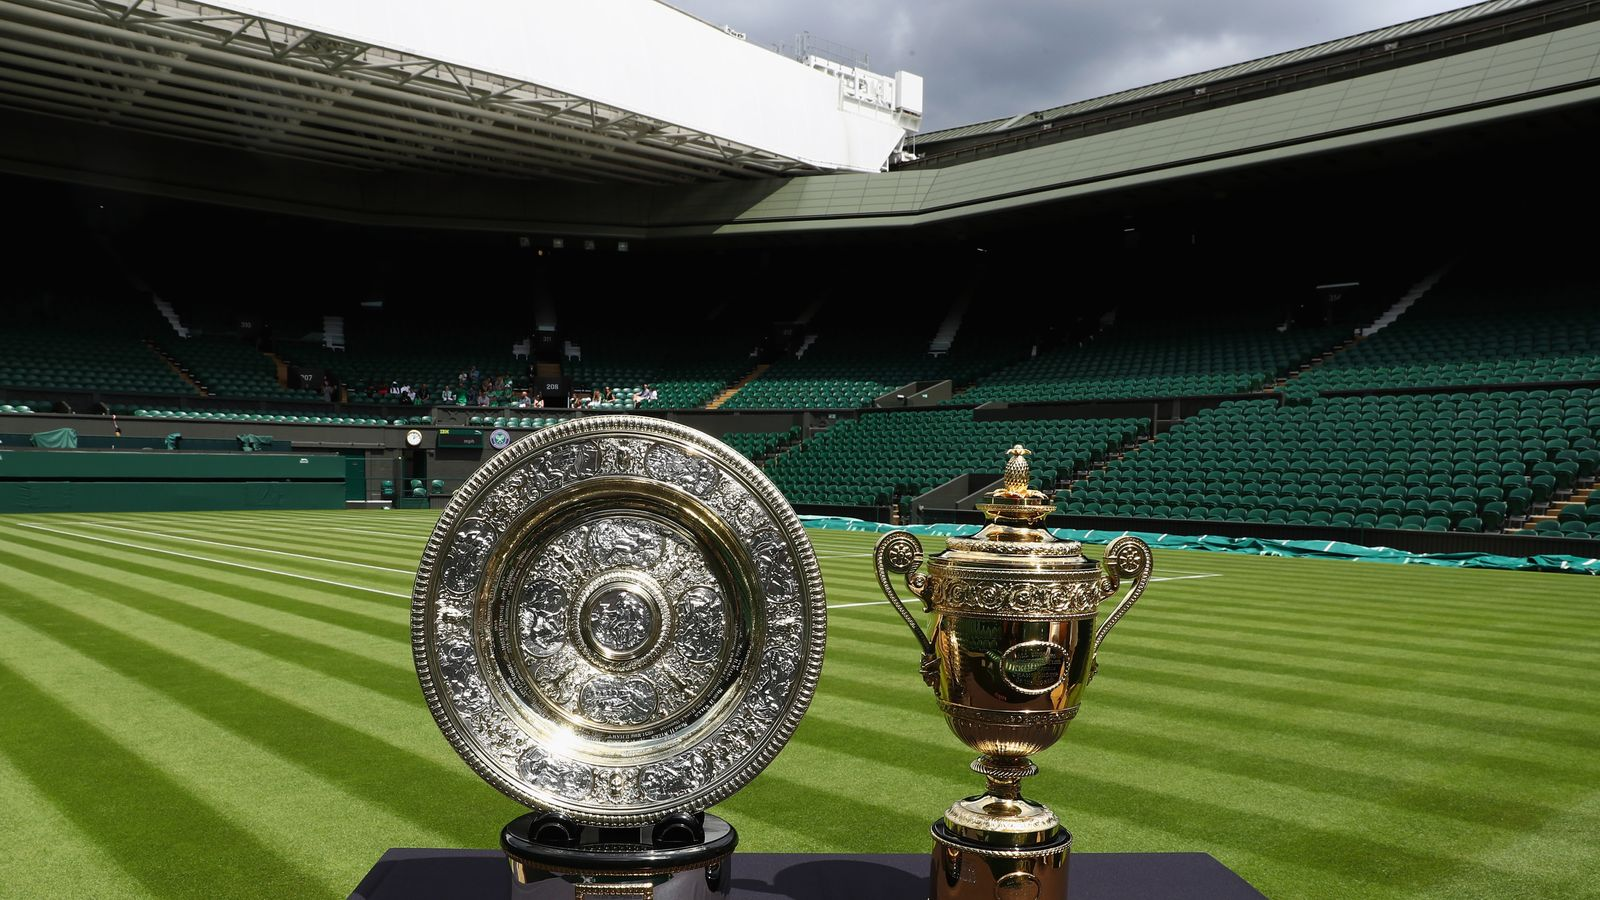 best service 5d680 0e7be Wimbledon Order of Play - All England Lawn Tennis Championship